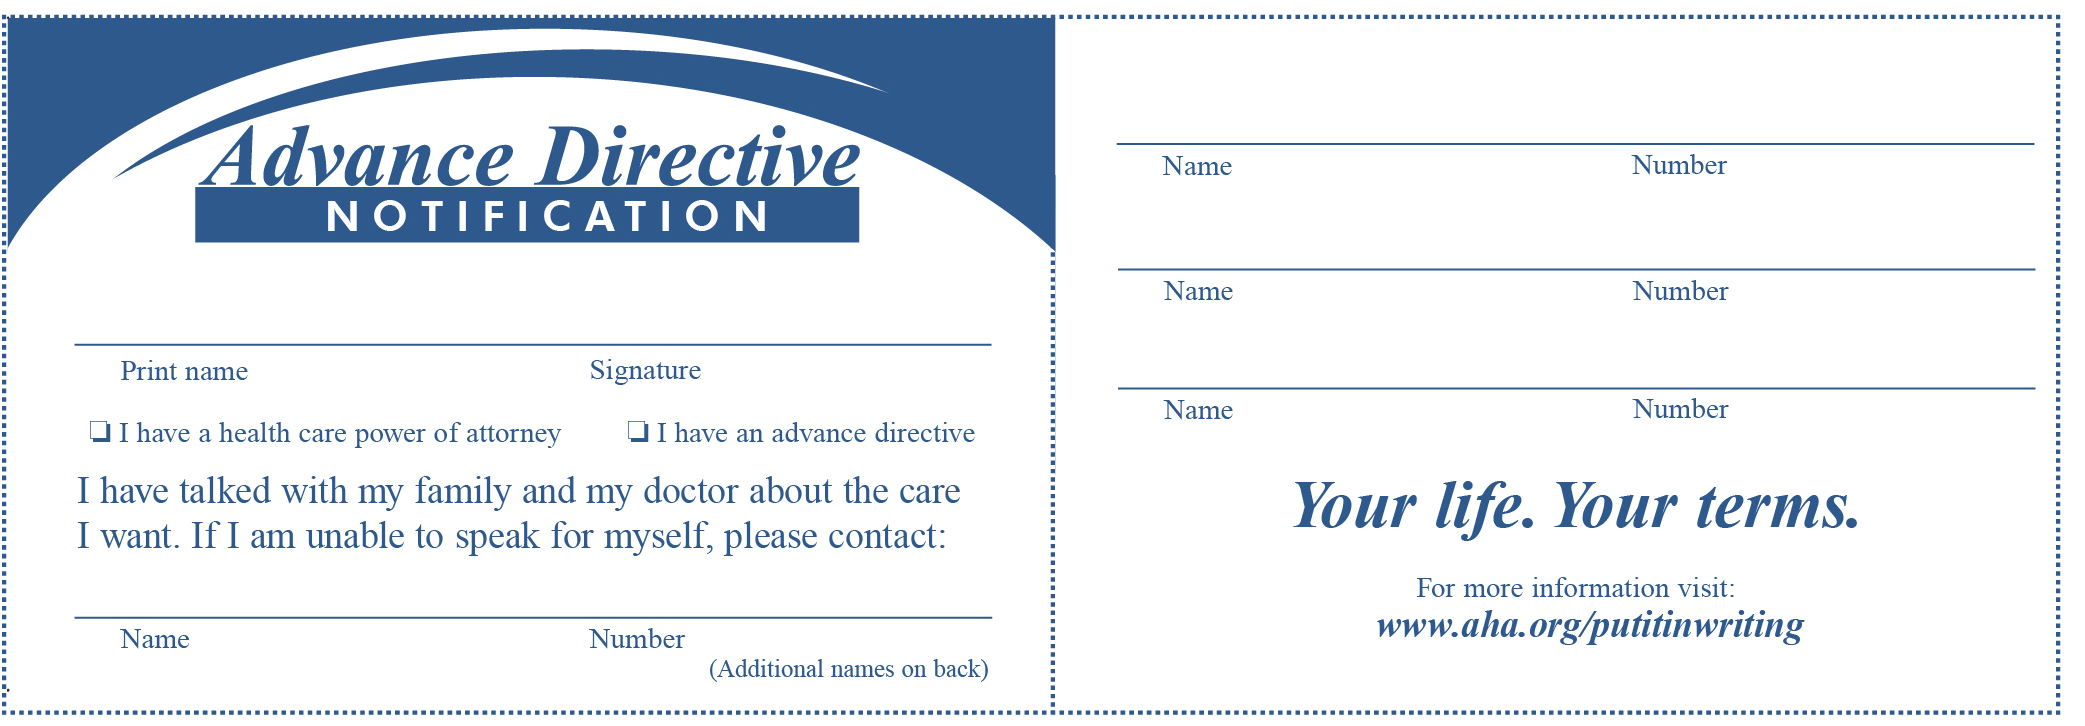 wallet card to indicate advance planning information -- see text